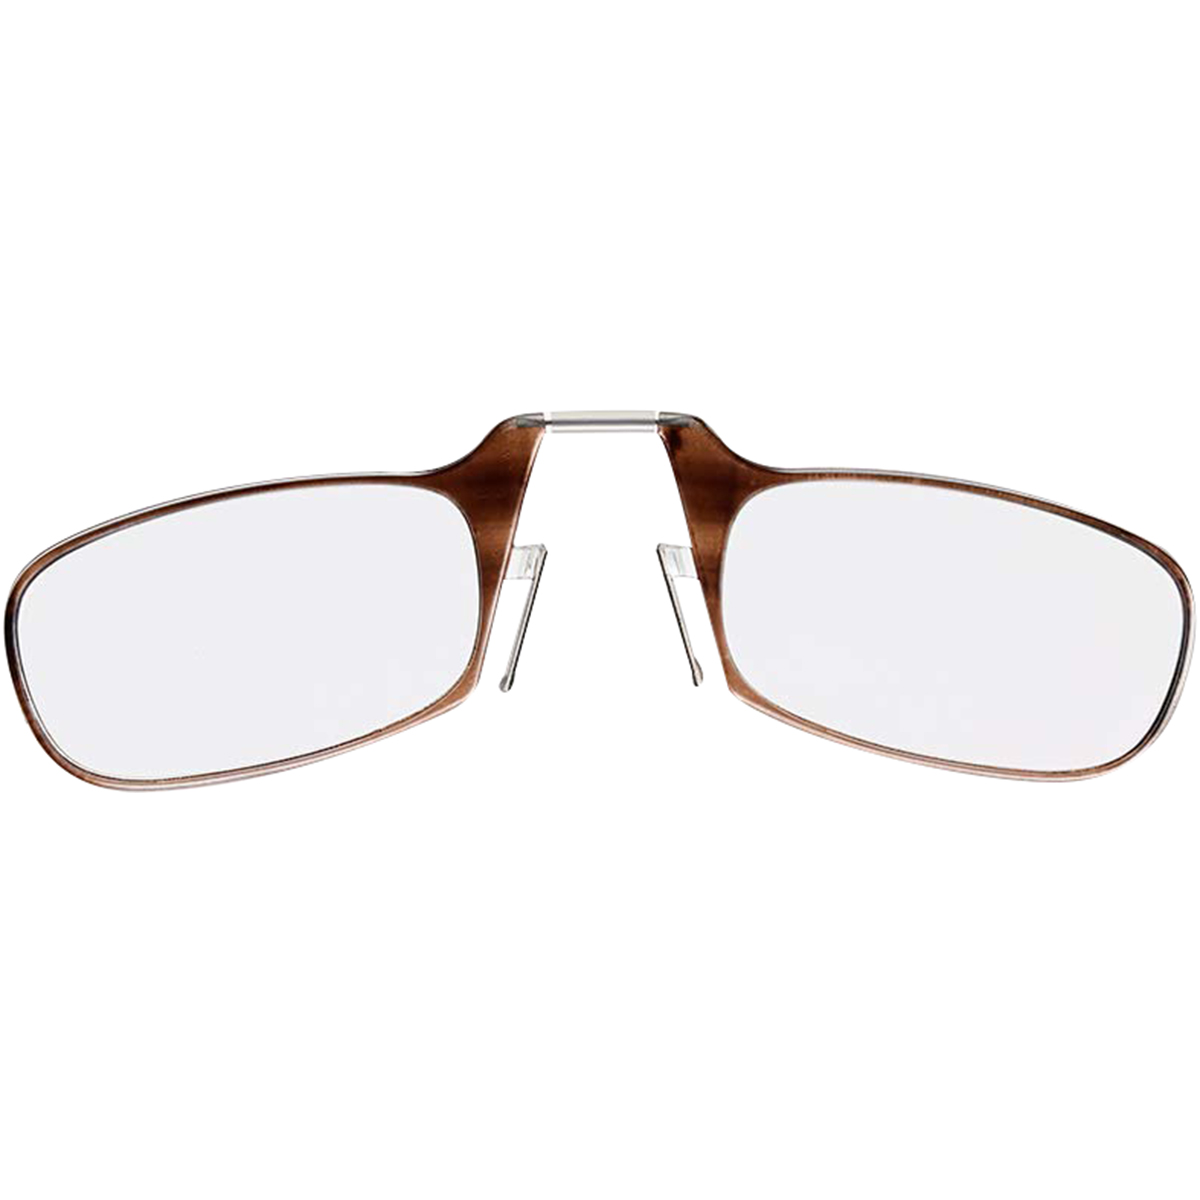 Thinoptics Secure Fit Armless Ultralight Reading Glasses